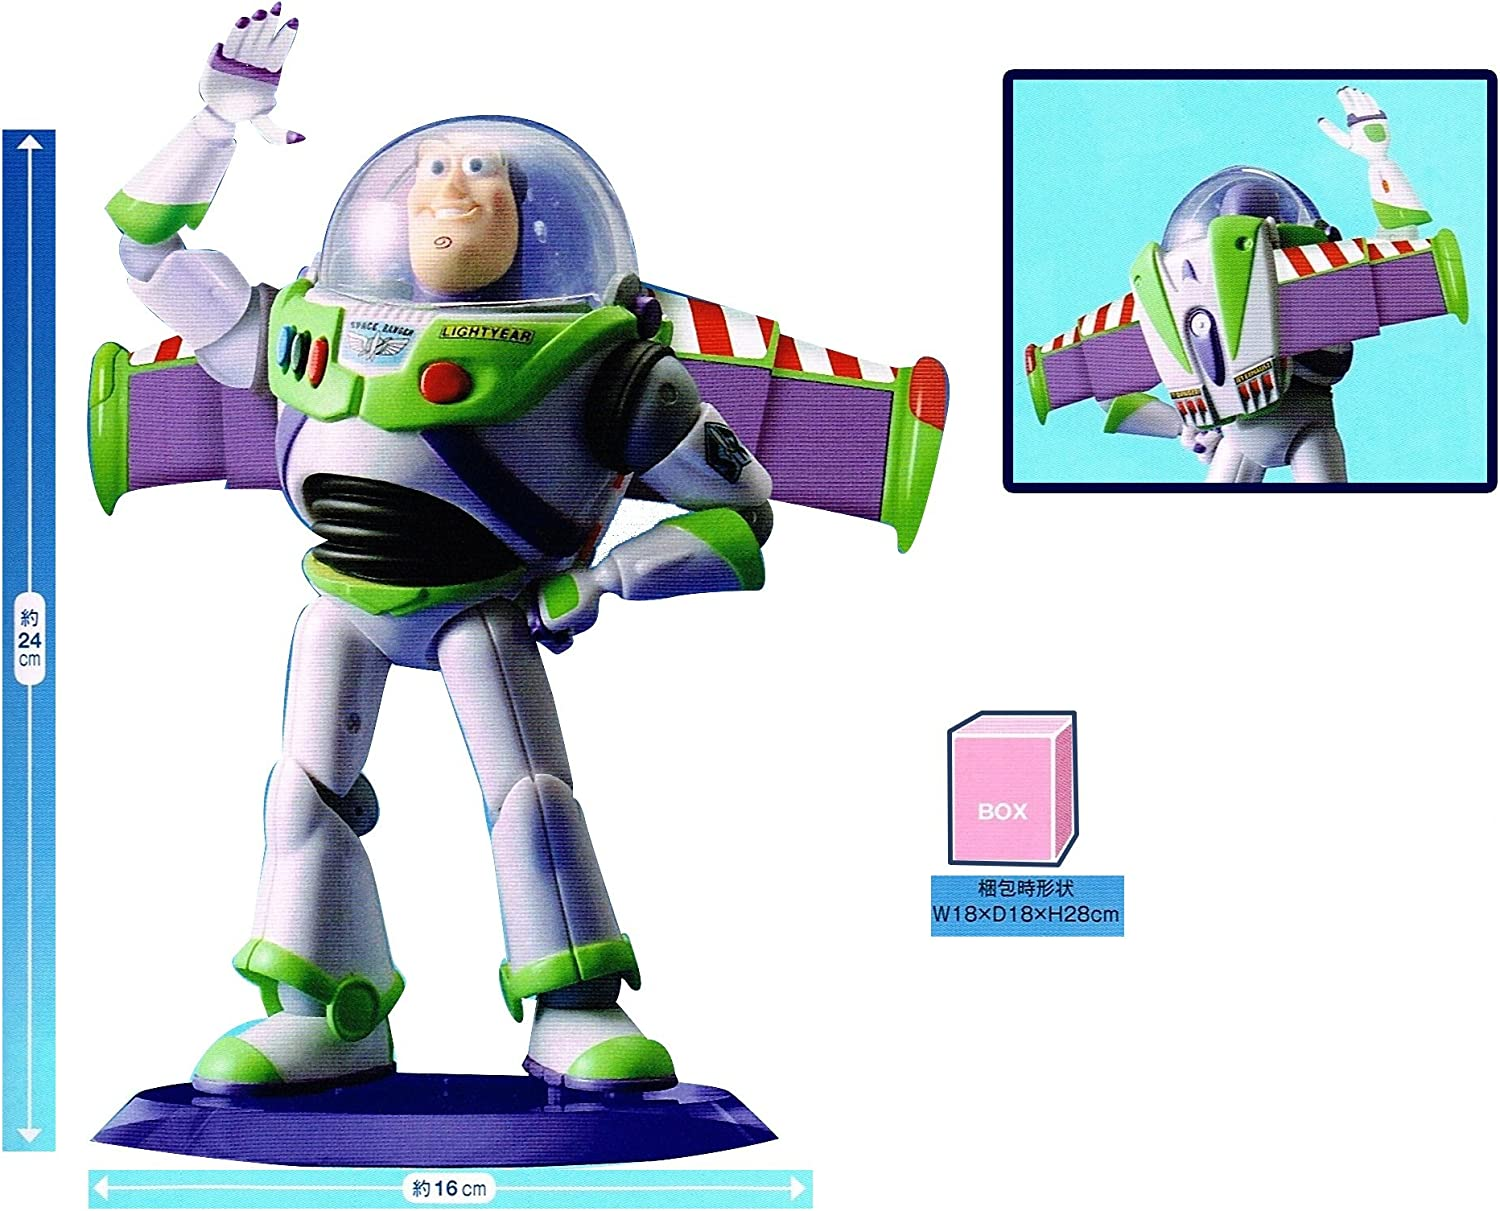 Toy Story Toy Story Buzz Lightyear Premium Figure all one